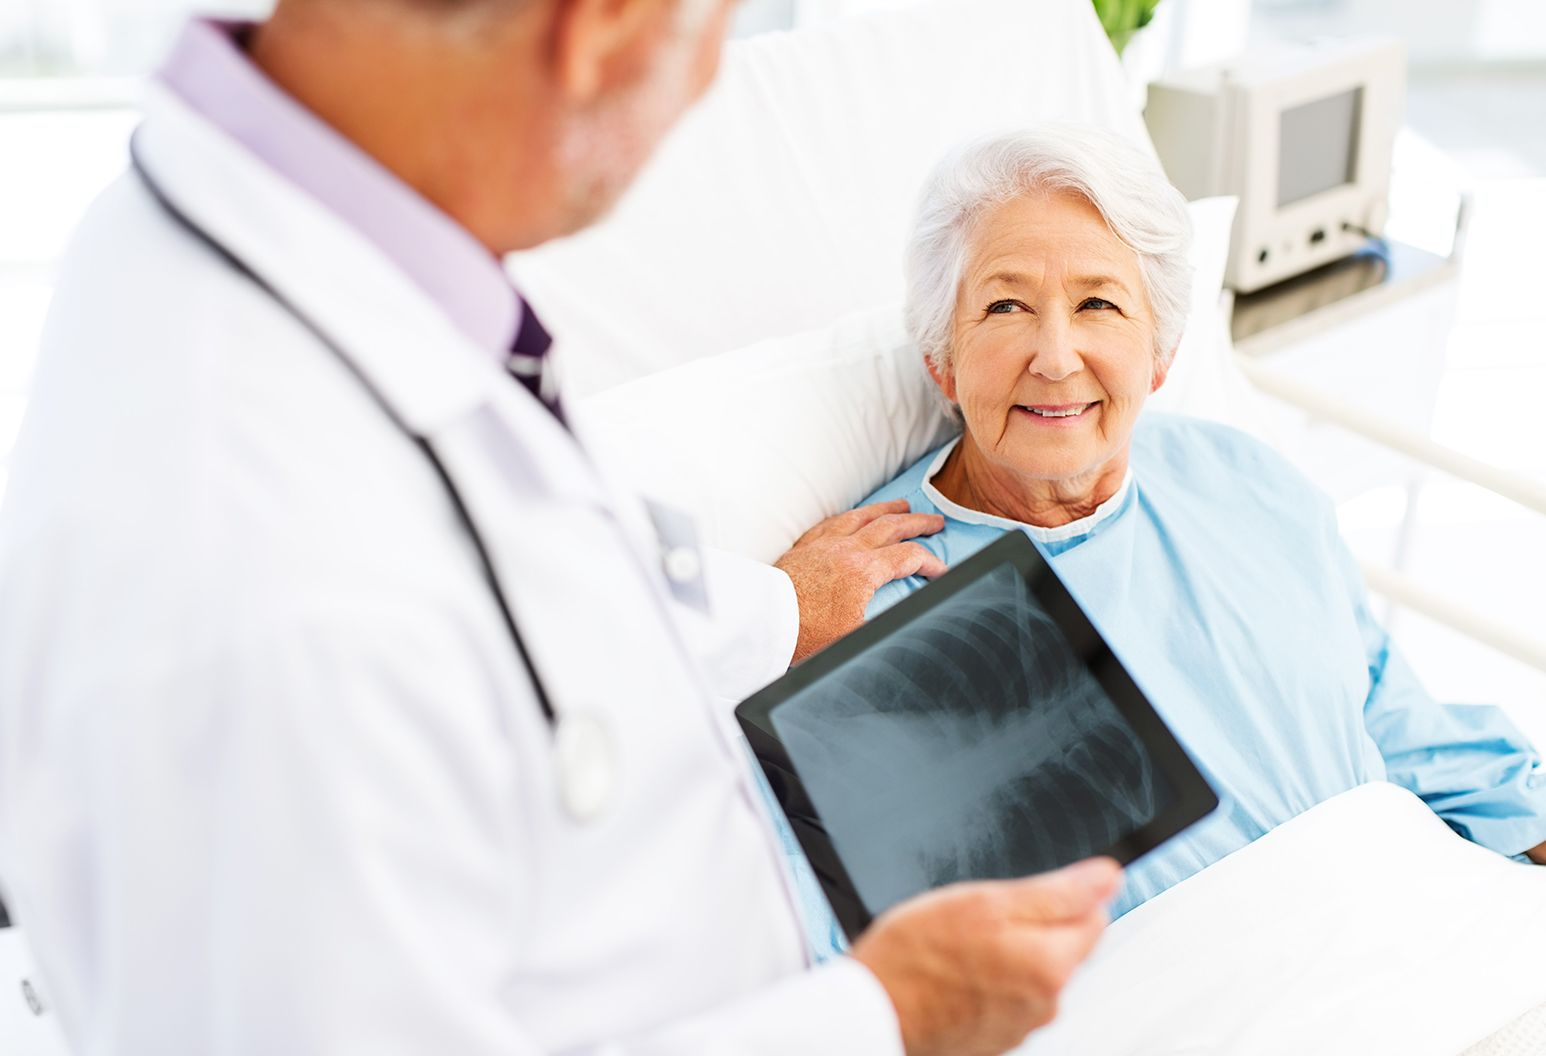 Older woman in hospital bed smiling at doctor holding a digital pad displaying chest X-ray.